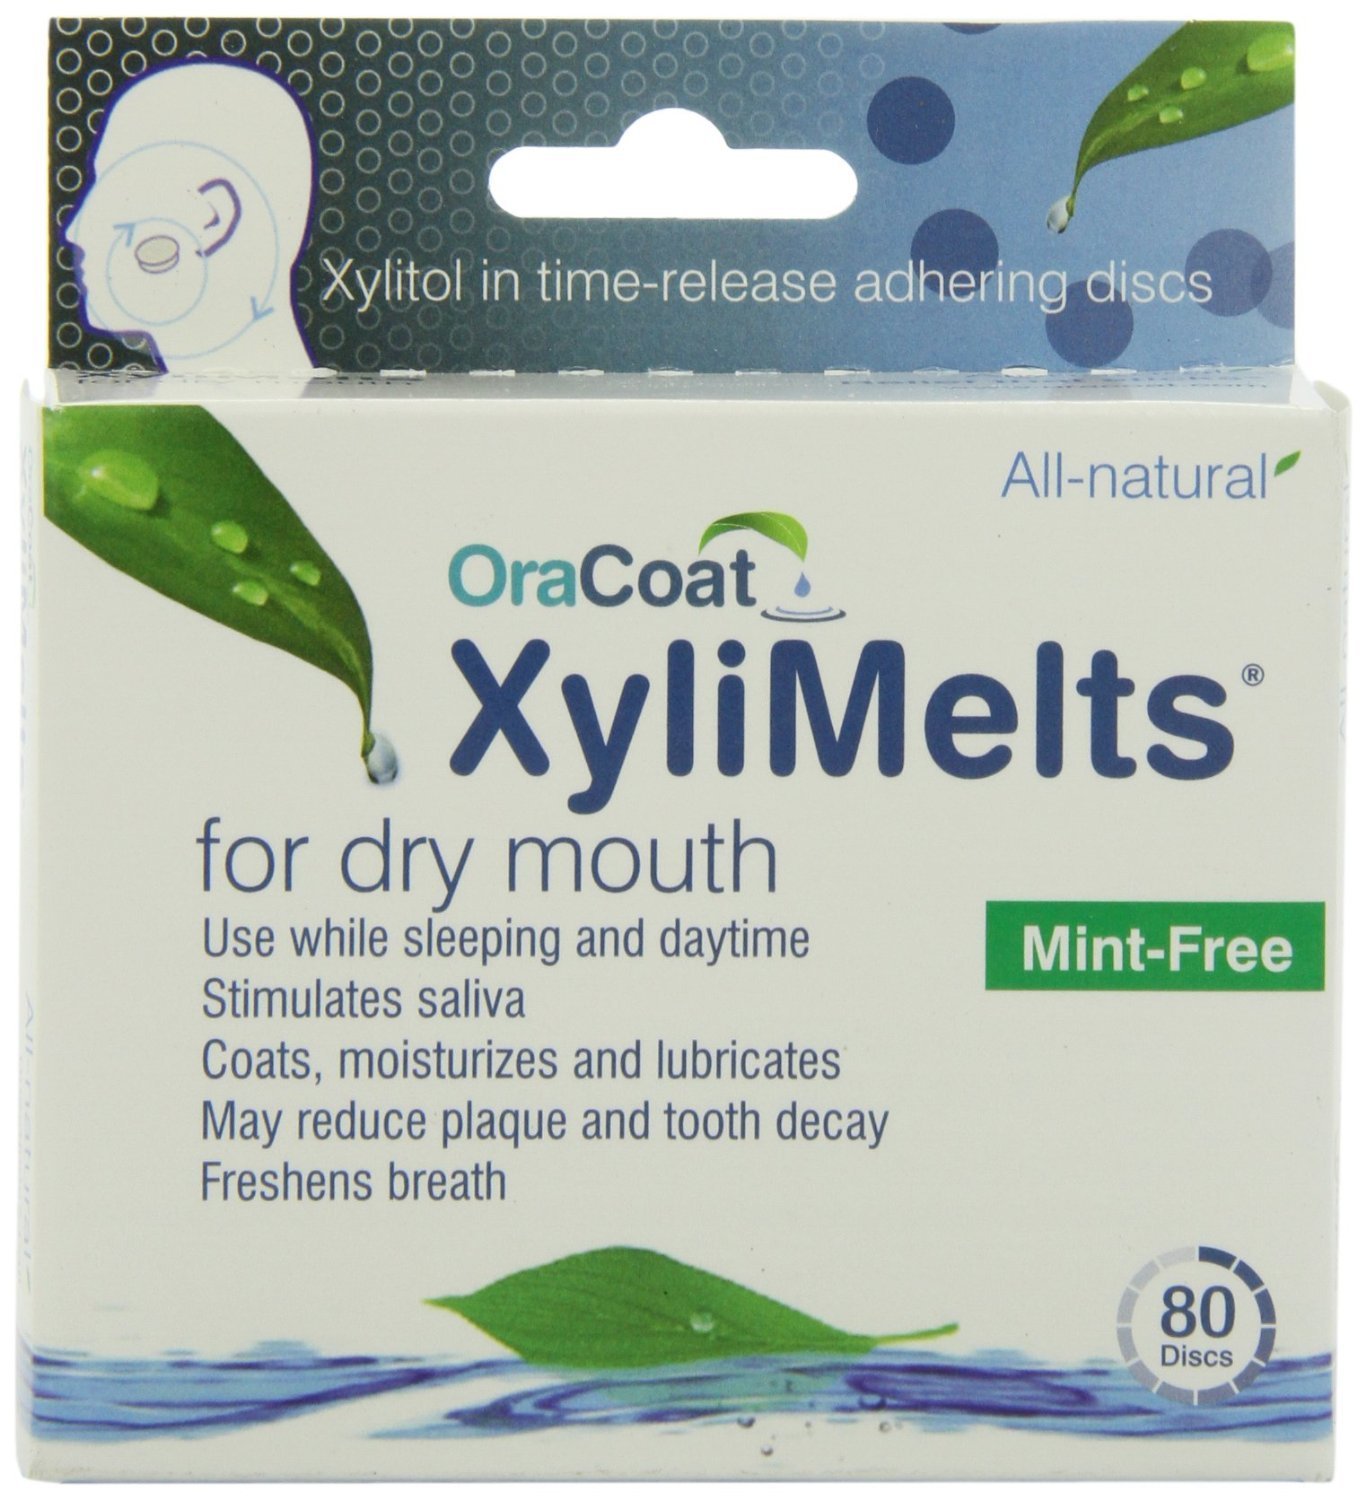 XyliMelts for Dry Mouth, Mint-Free, 80-Count Boxes (Pack of 2)